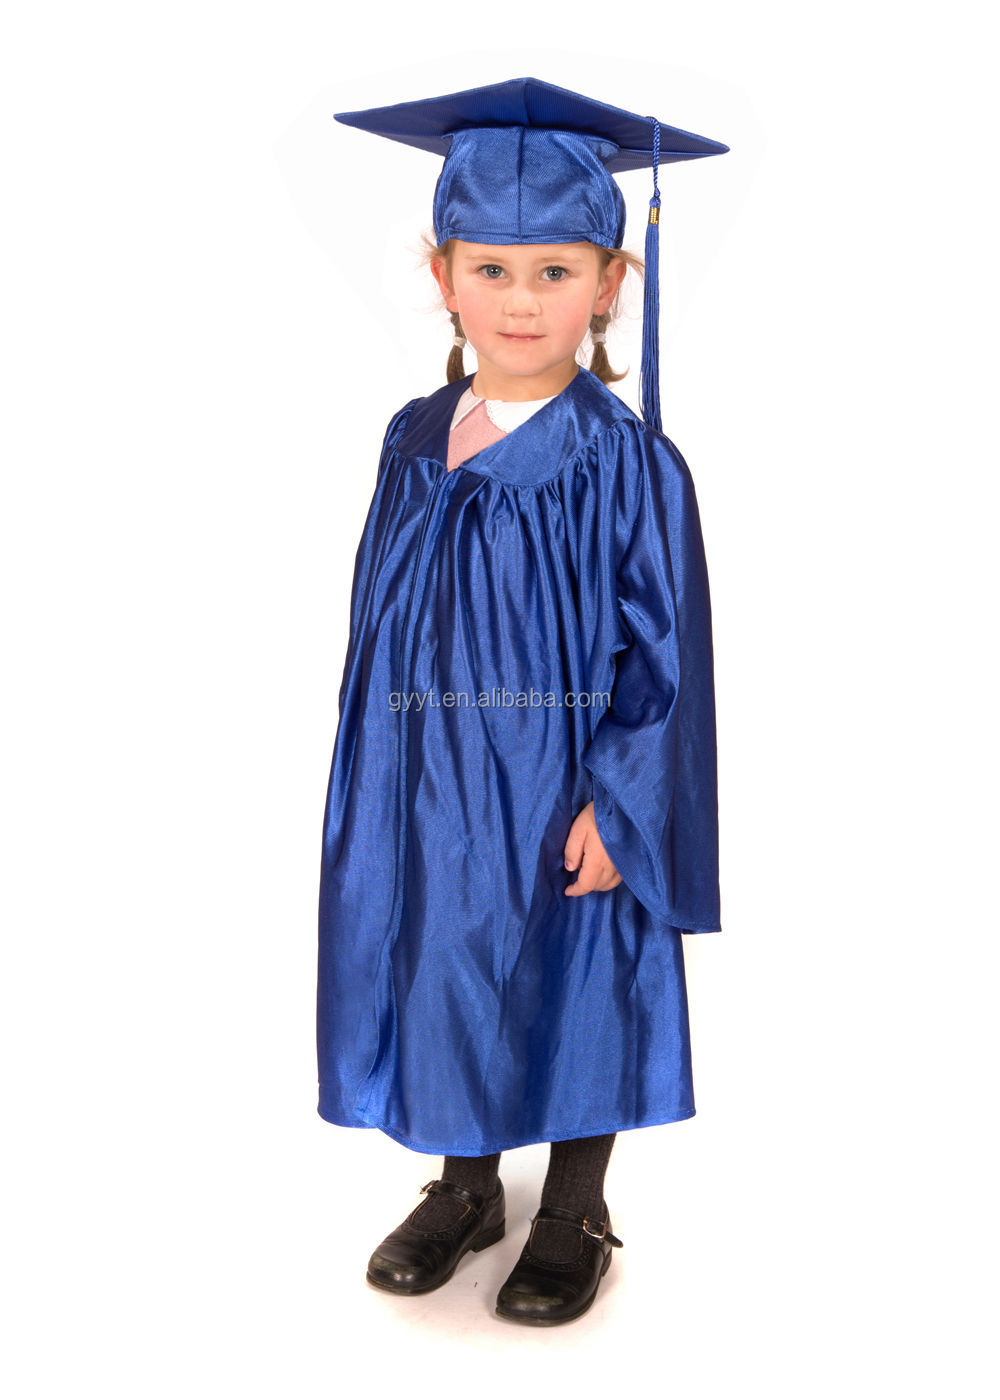 Baby Cap Gown Wholesale, Cap Gown Suppliers - Alibaba